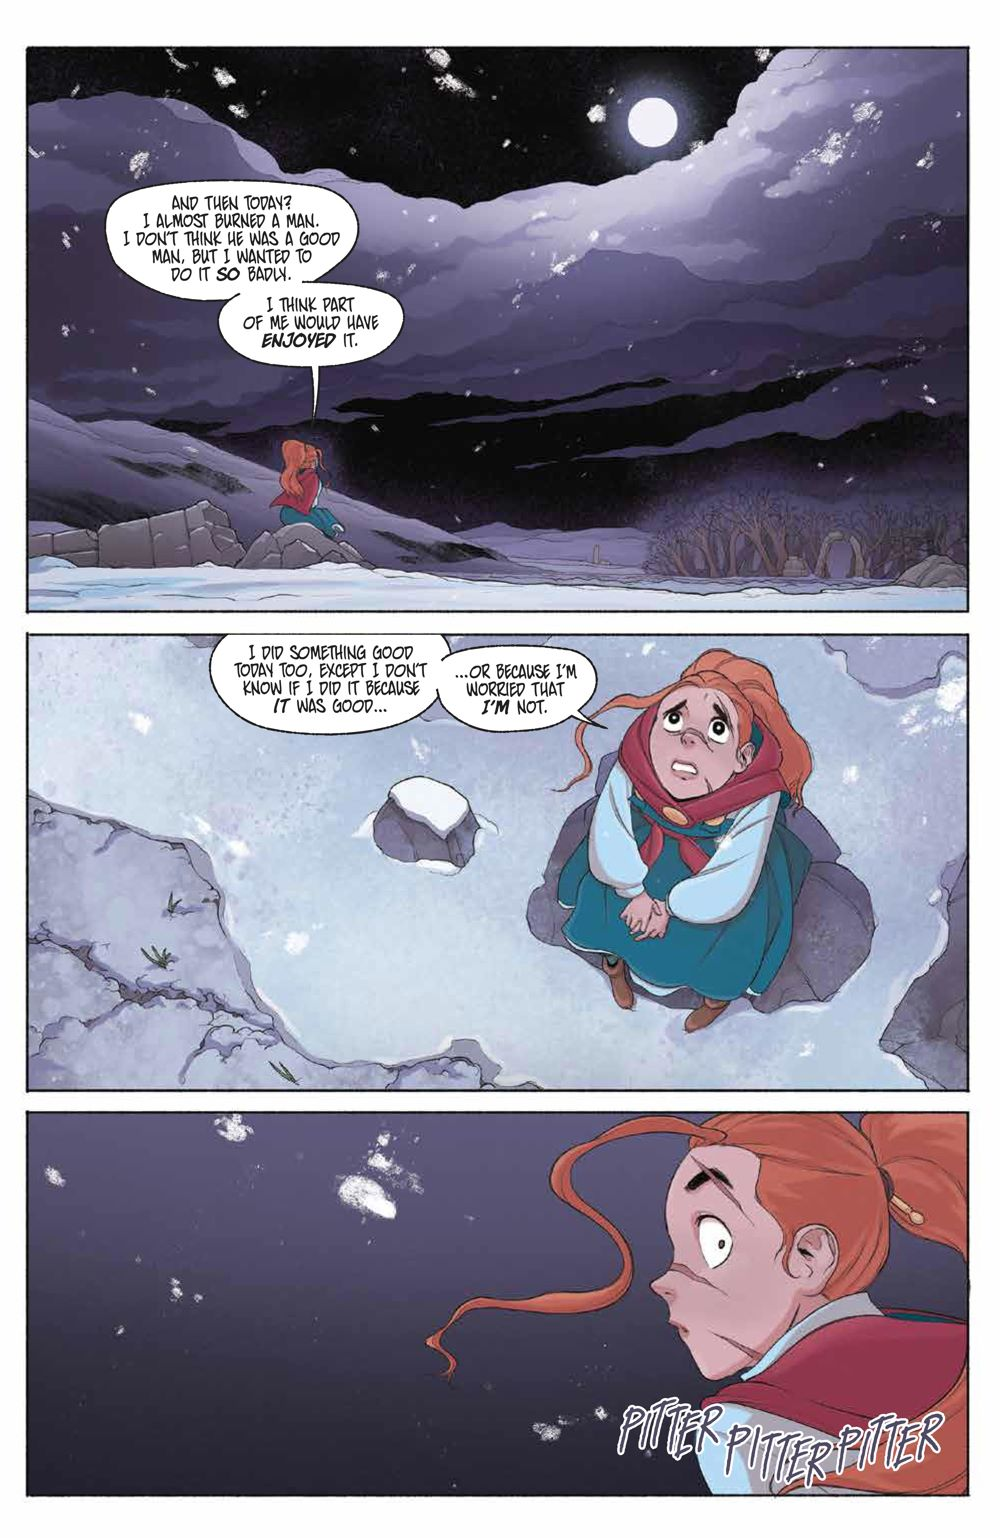 LastWitch_005_PRESS_5 ComicList Previews: THE LAST WITCH #5 (OF 5)